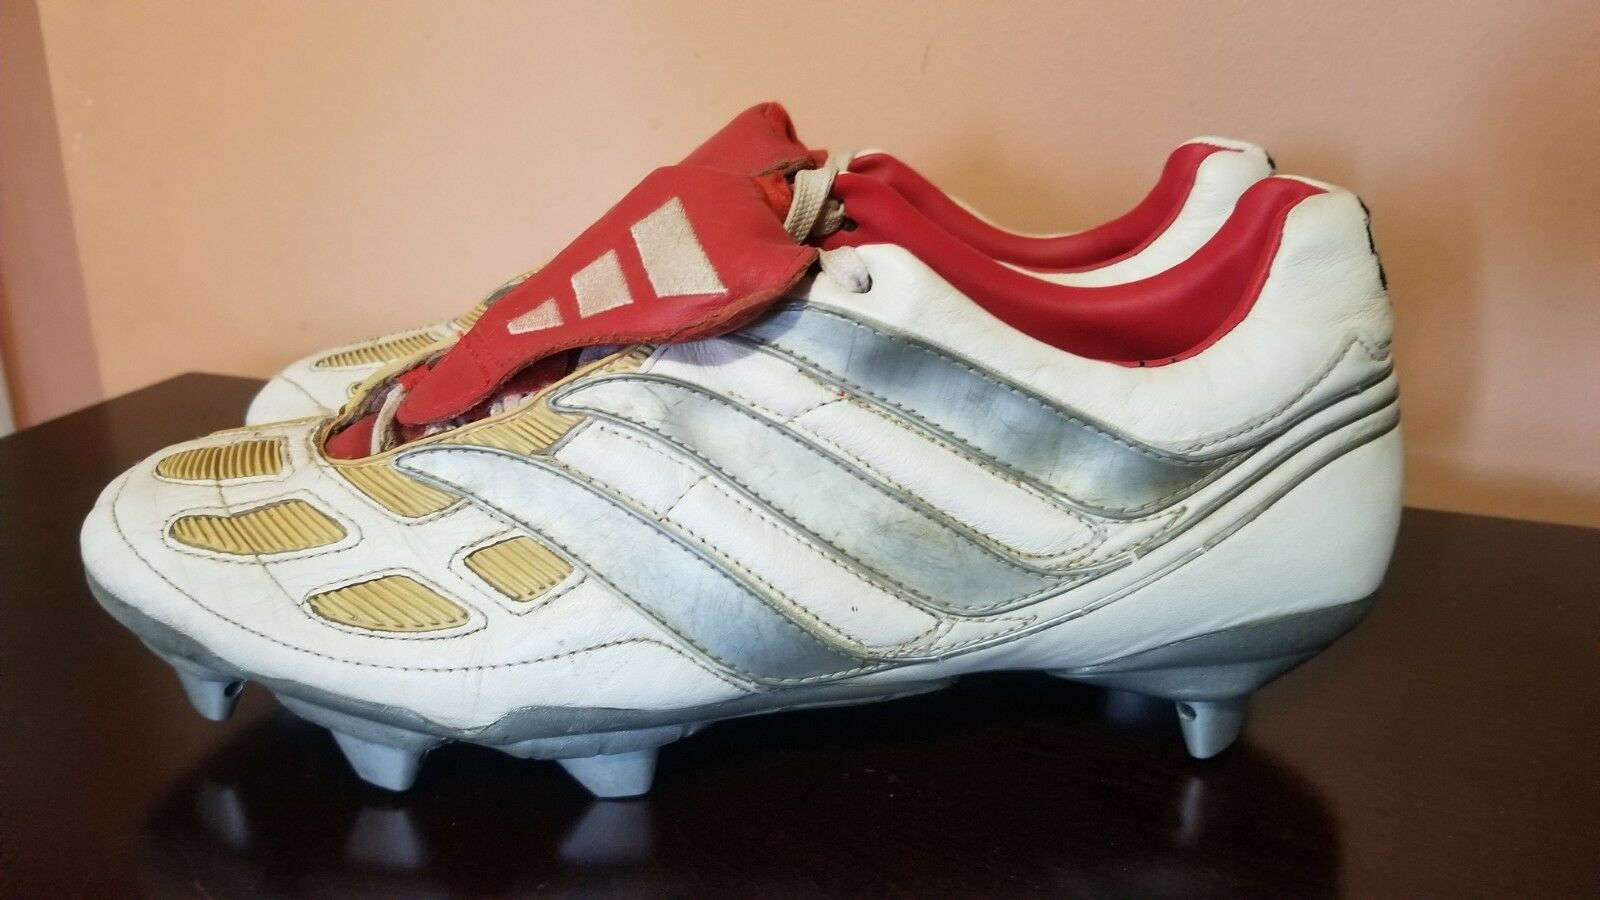 Adidas Prossoator Precision Mania SG soccer scarpe football Cleats US 11